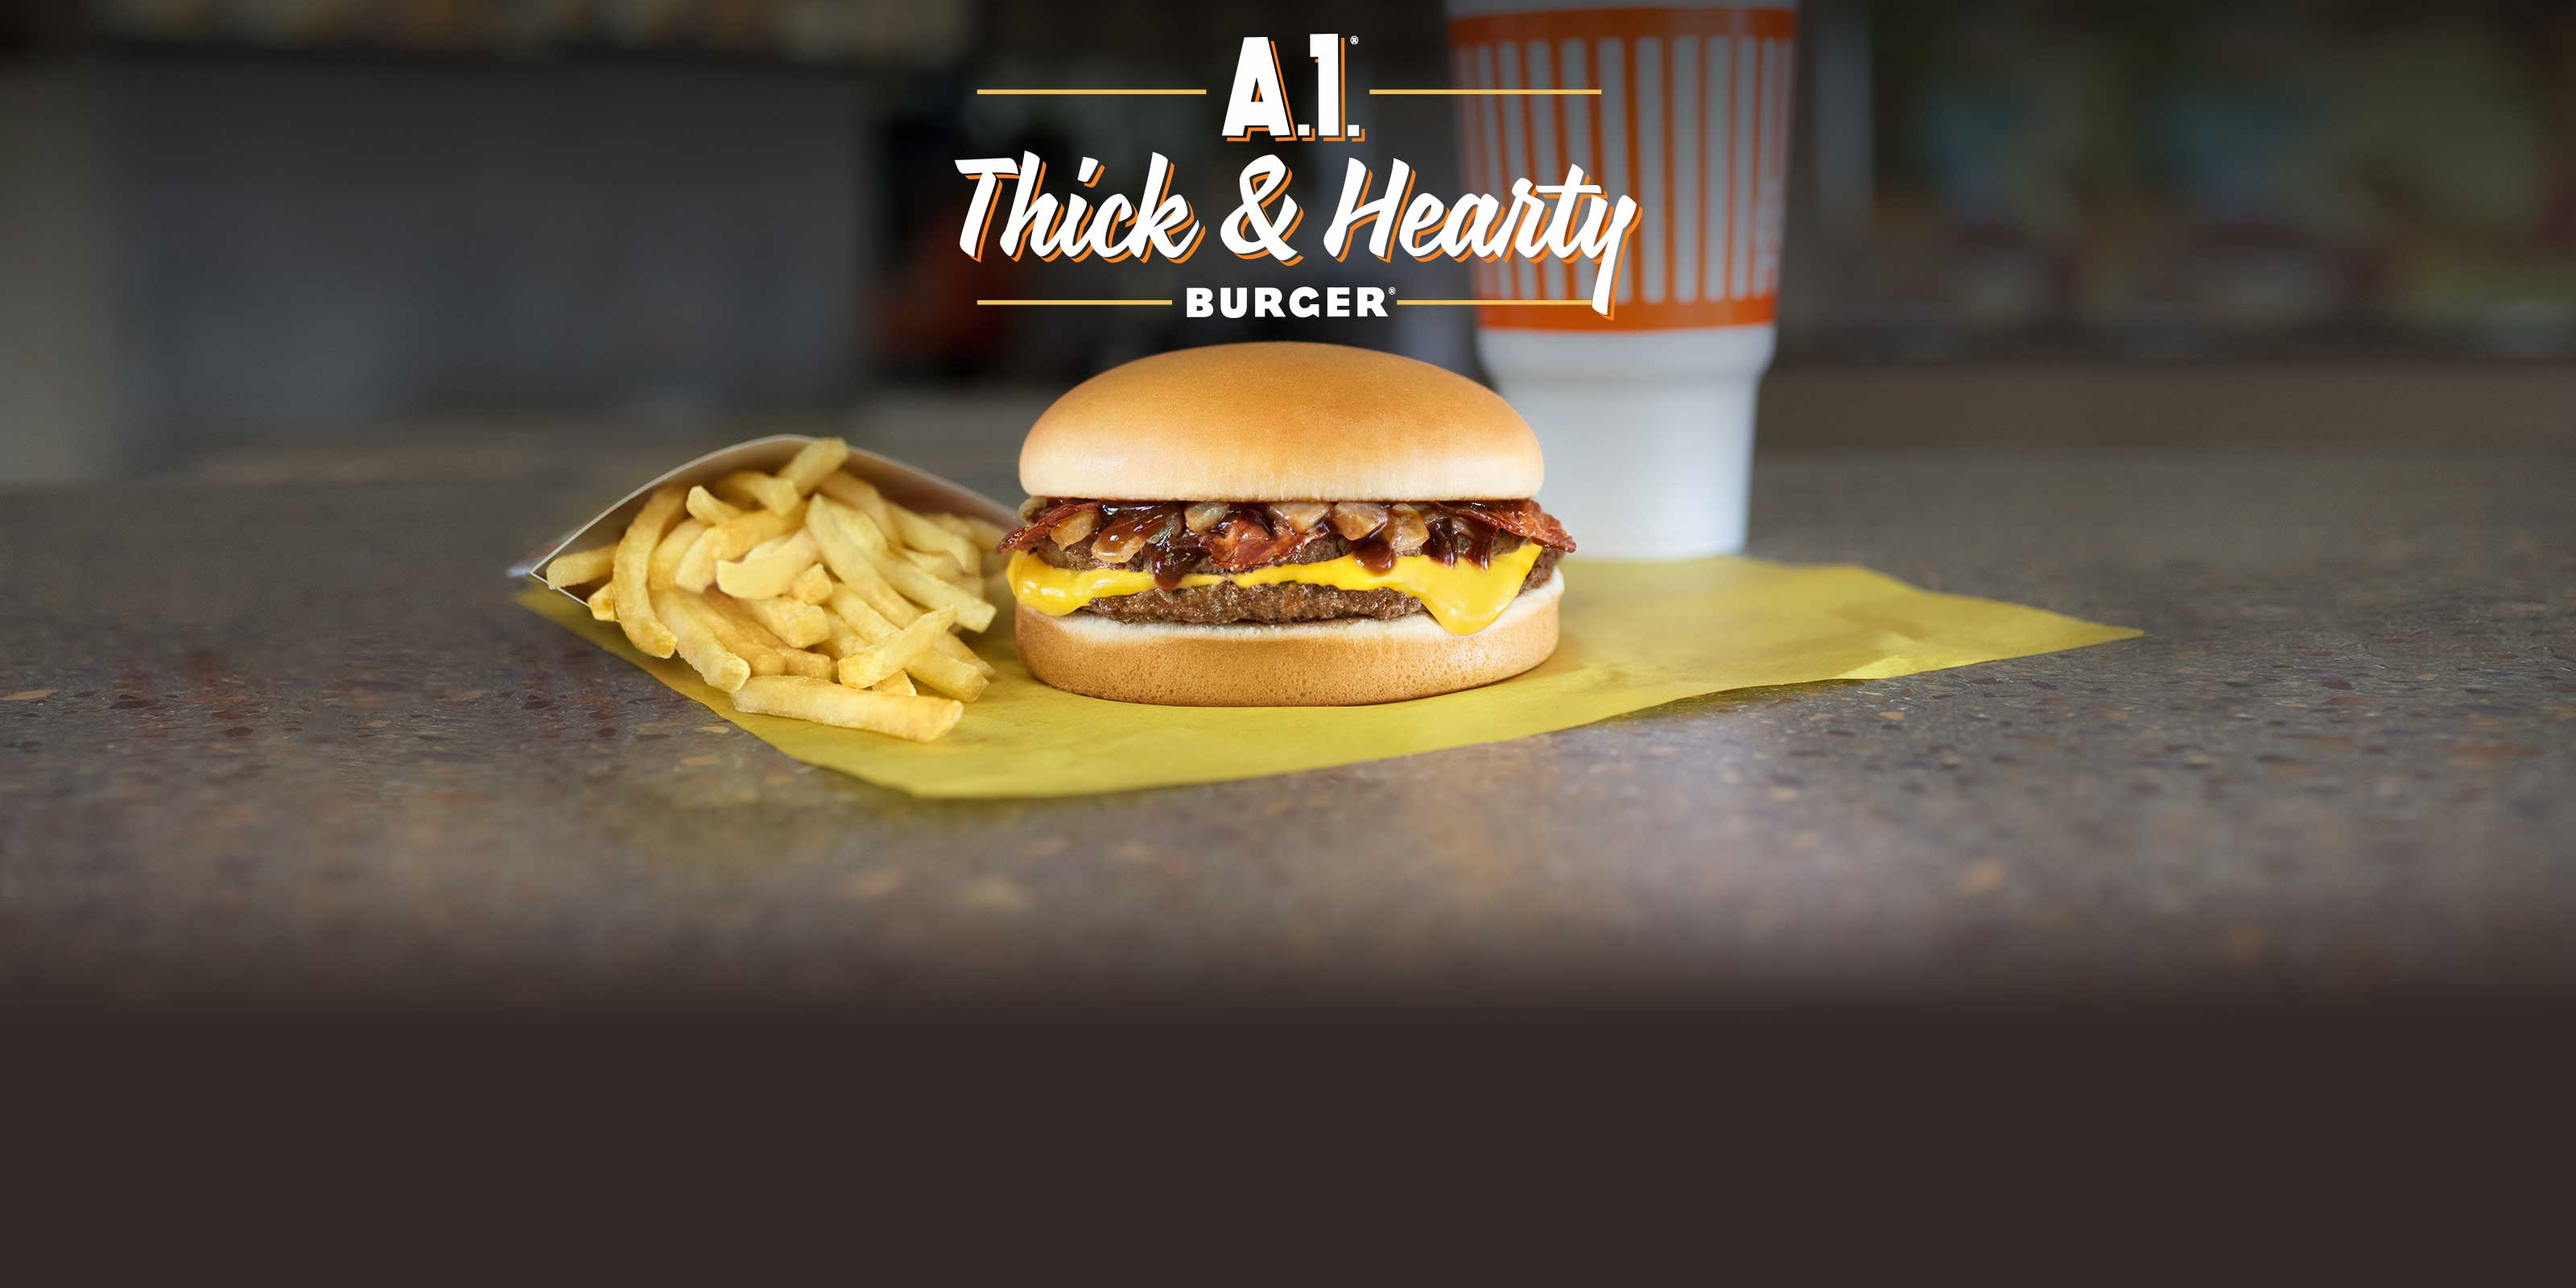 A.1. Thick & Hearty Burger